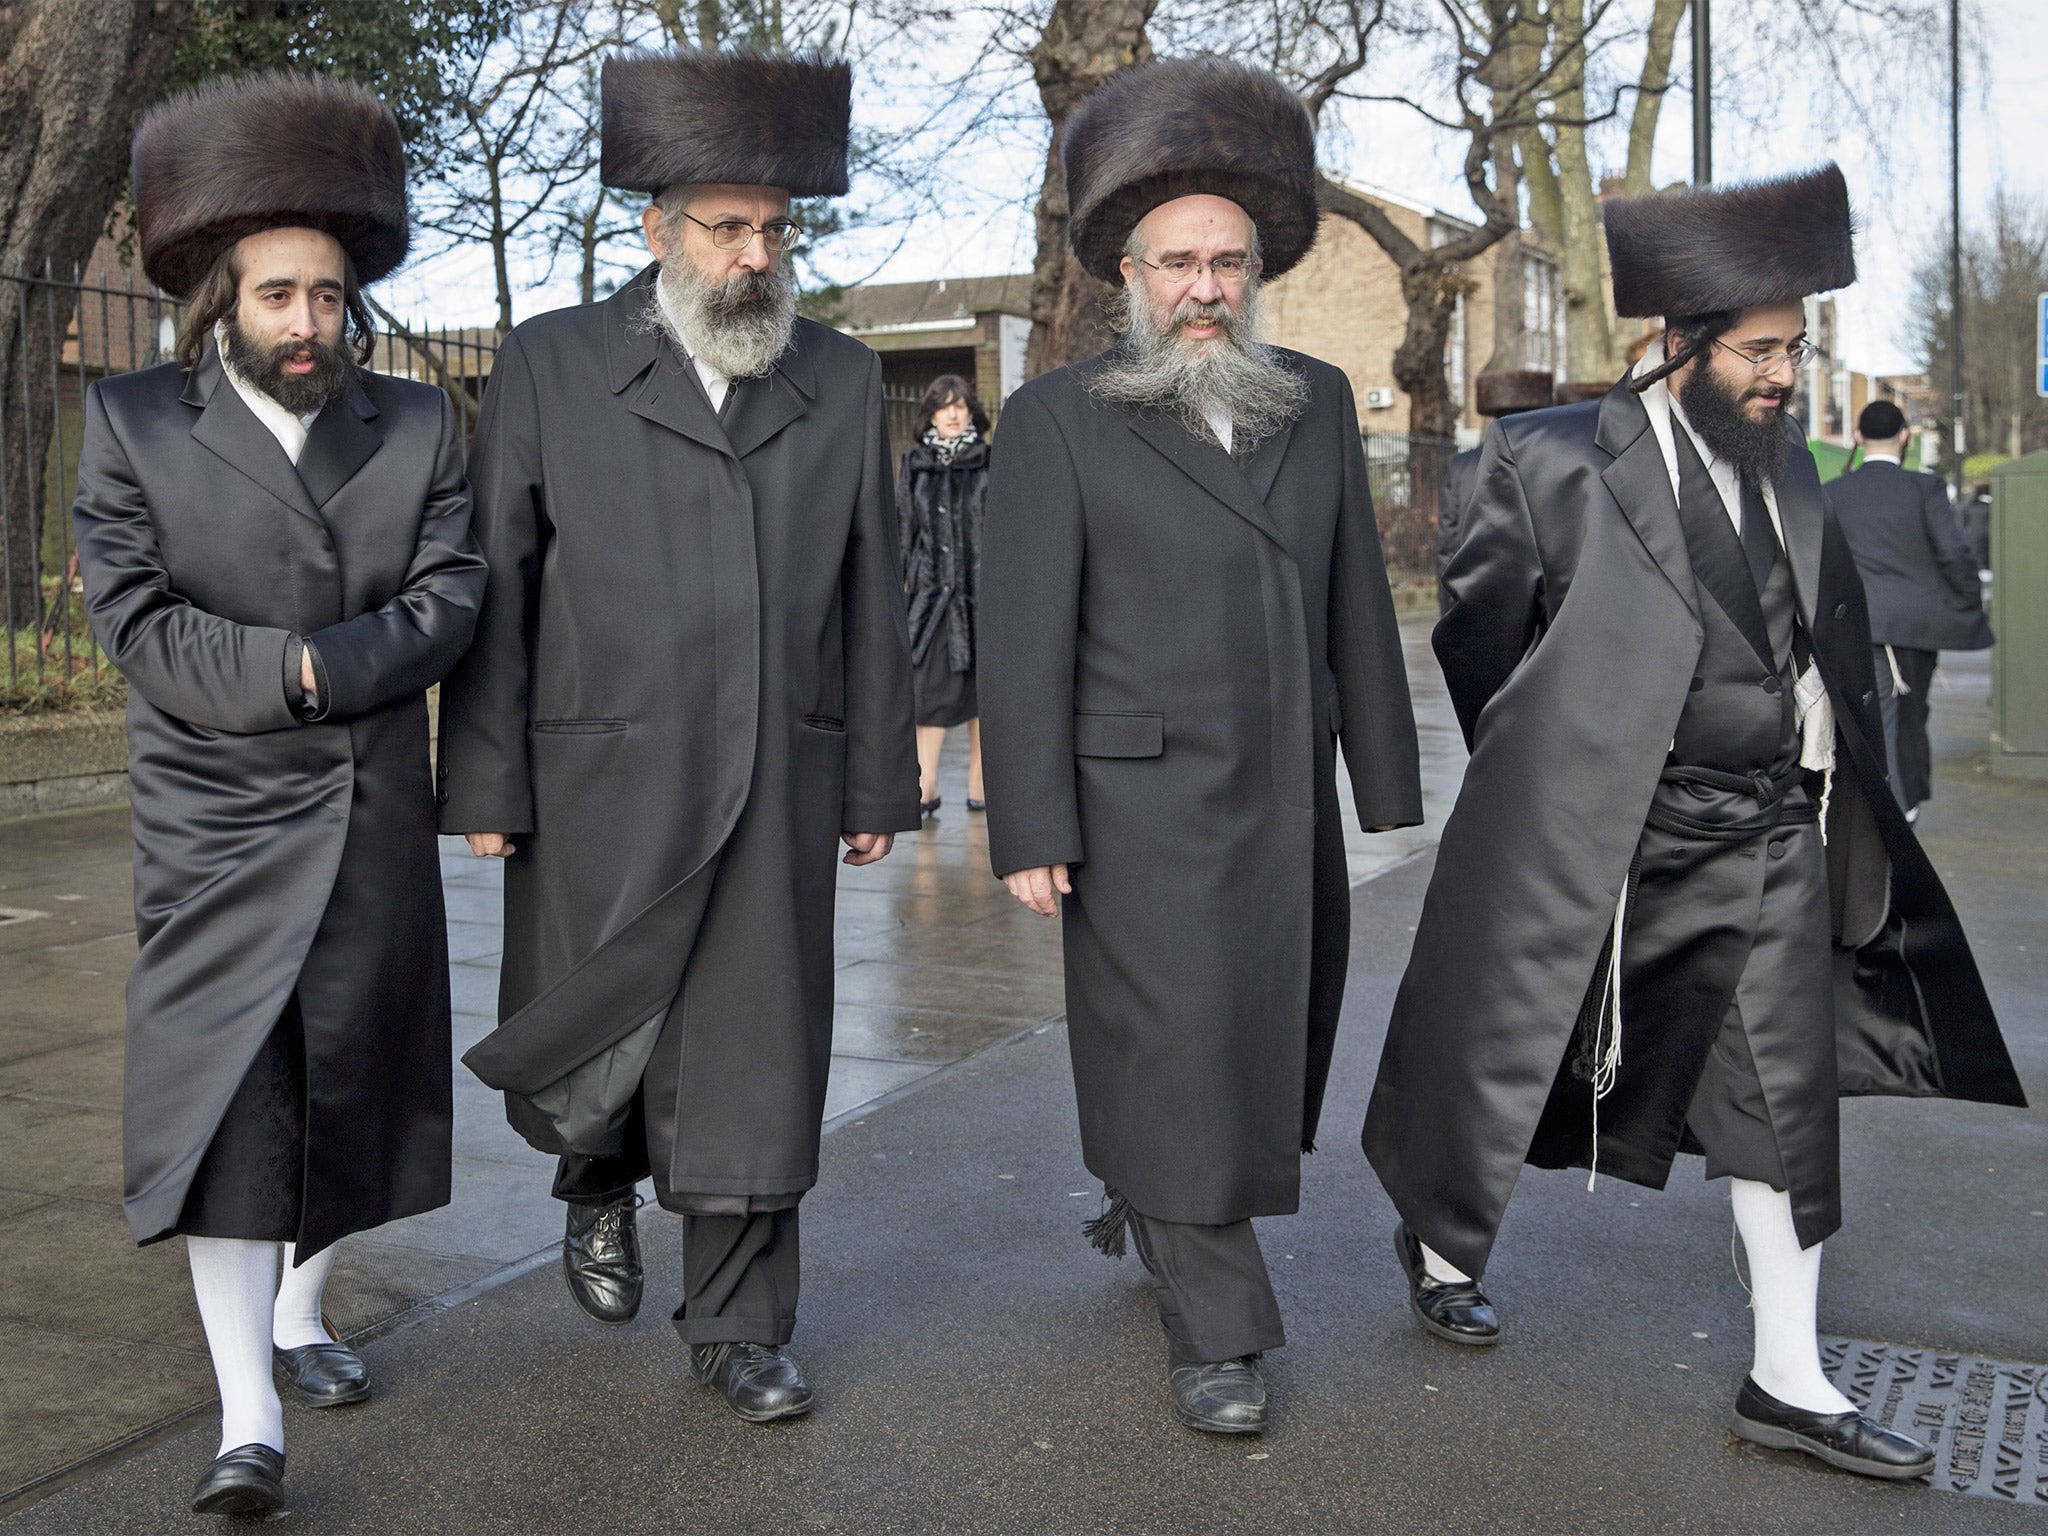 jewish single women in chalk hill Freedman's pet hate is western feminists' reading of an ultra-orthodox jewish woman or jewish mystic, haredi jews of stamford hill them on a single wage.